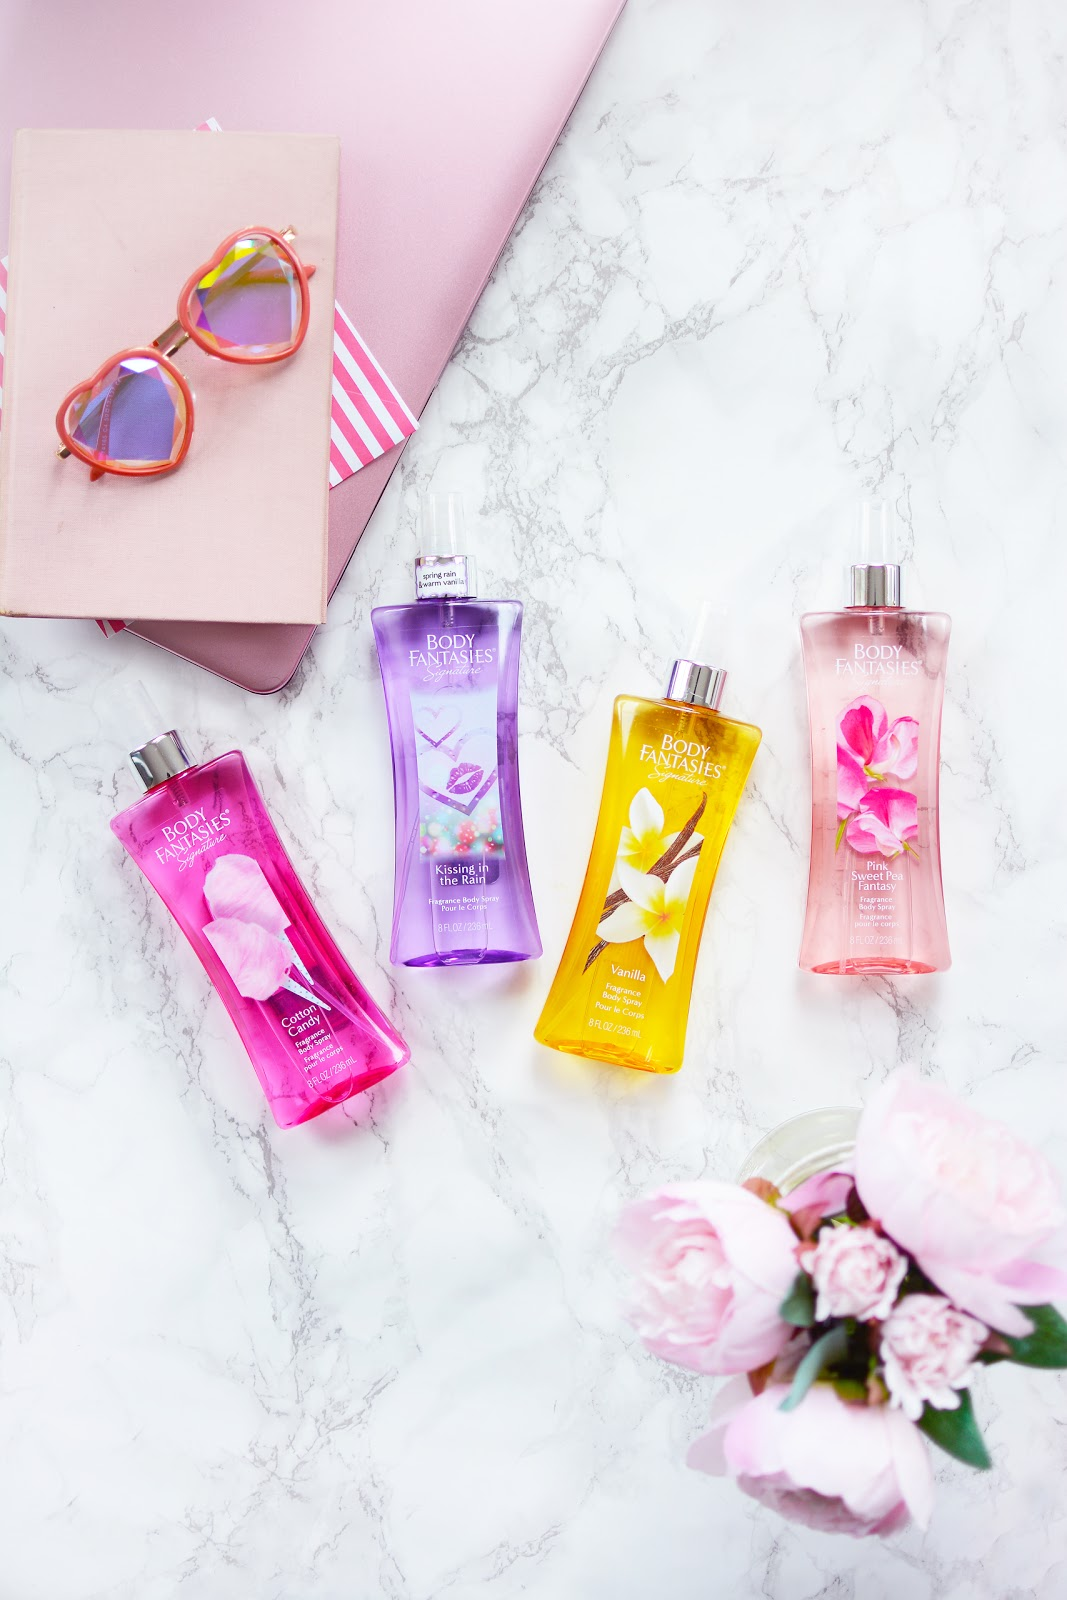 body fantasies body mists